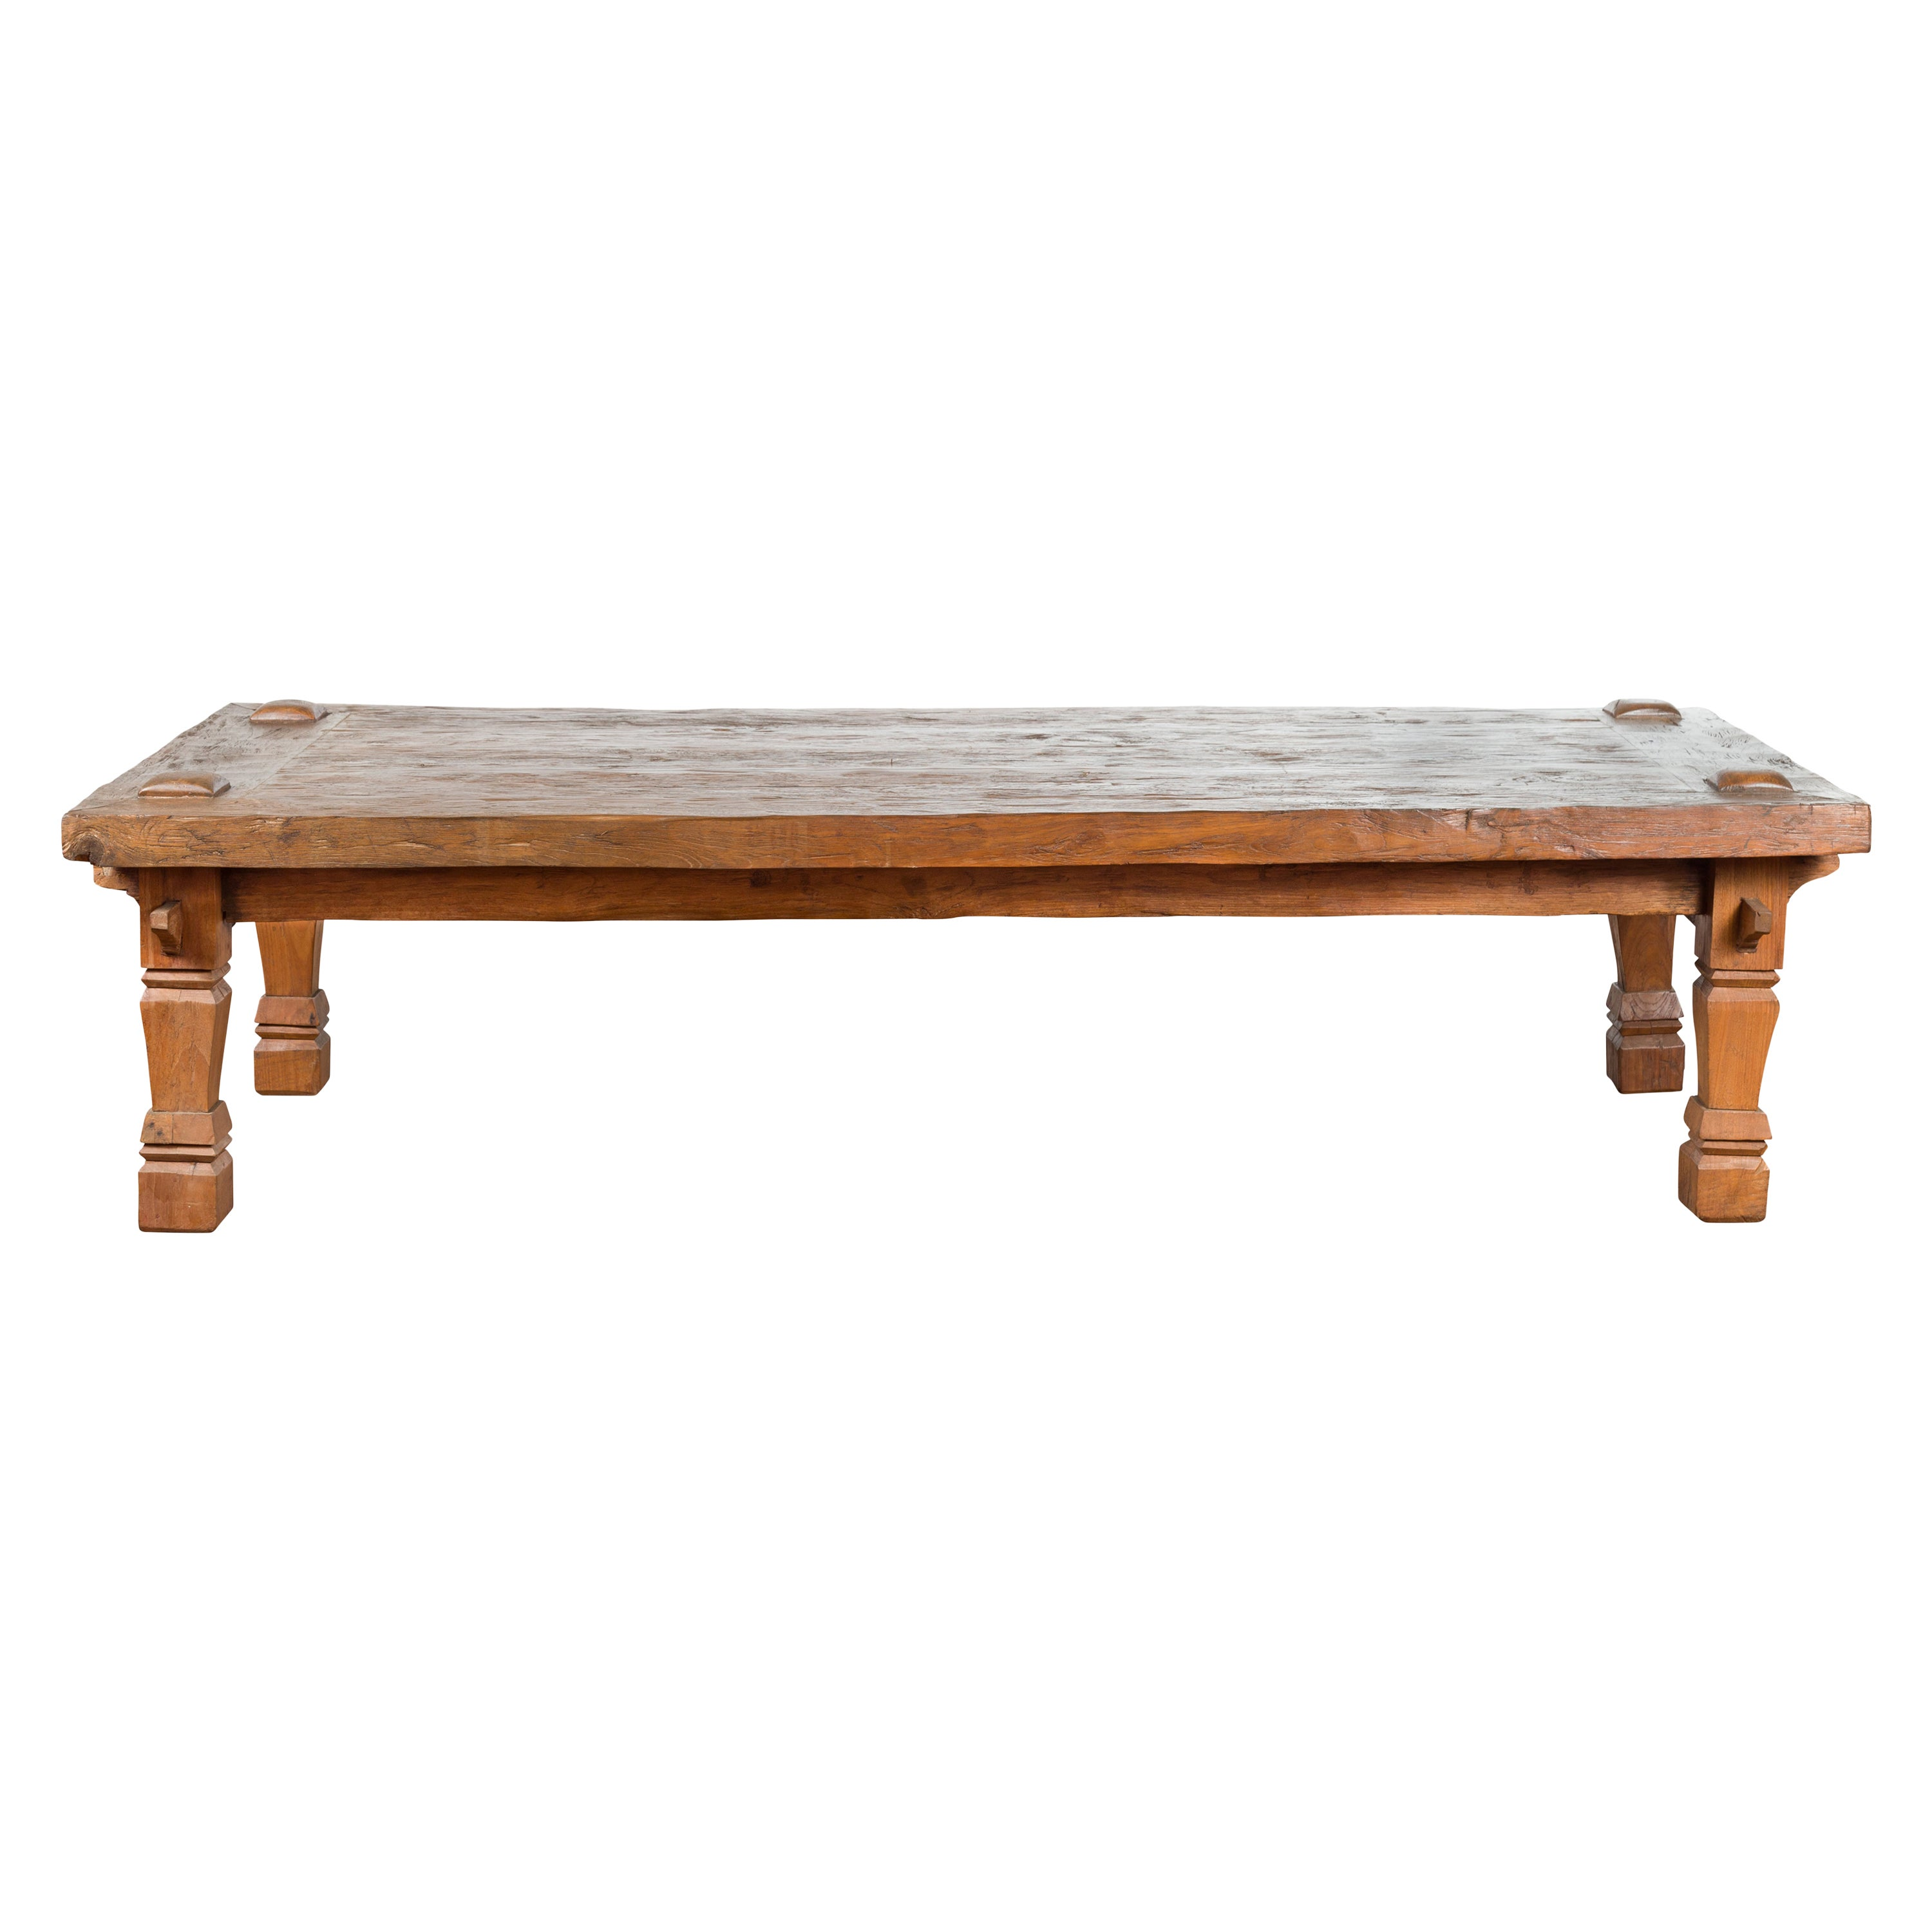 19th Century Indonesian Madurese Coffee Table with Carved Legs and Raised Joints